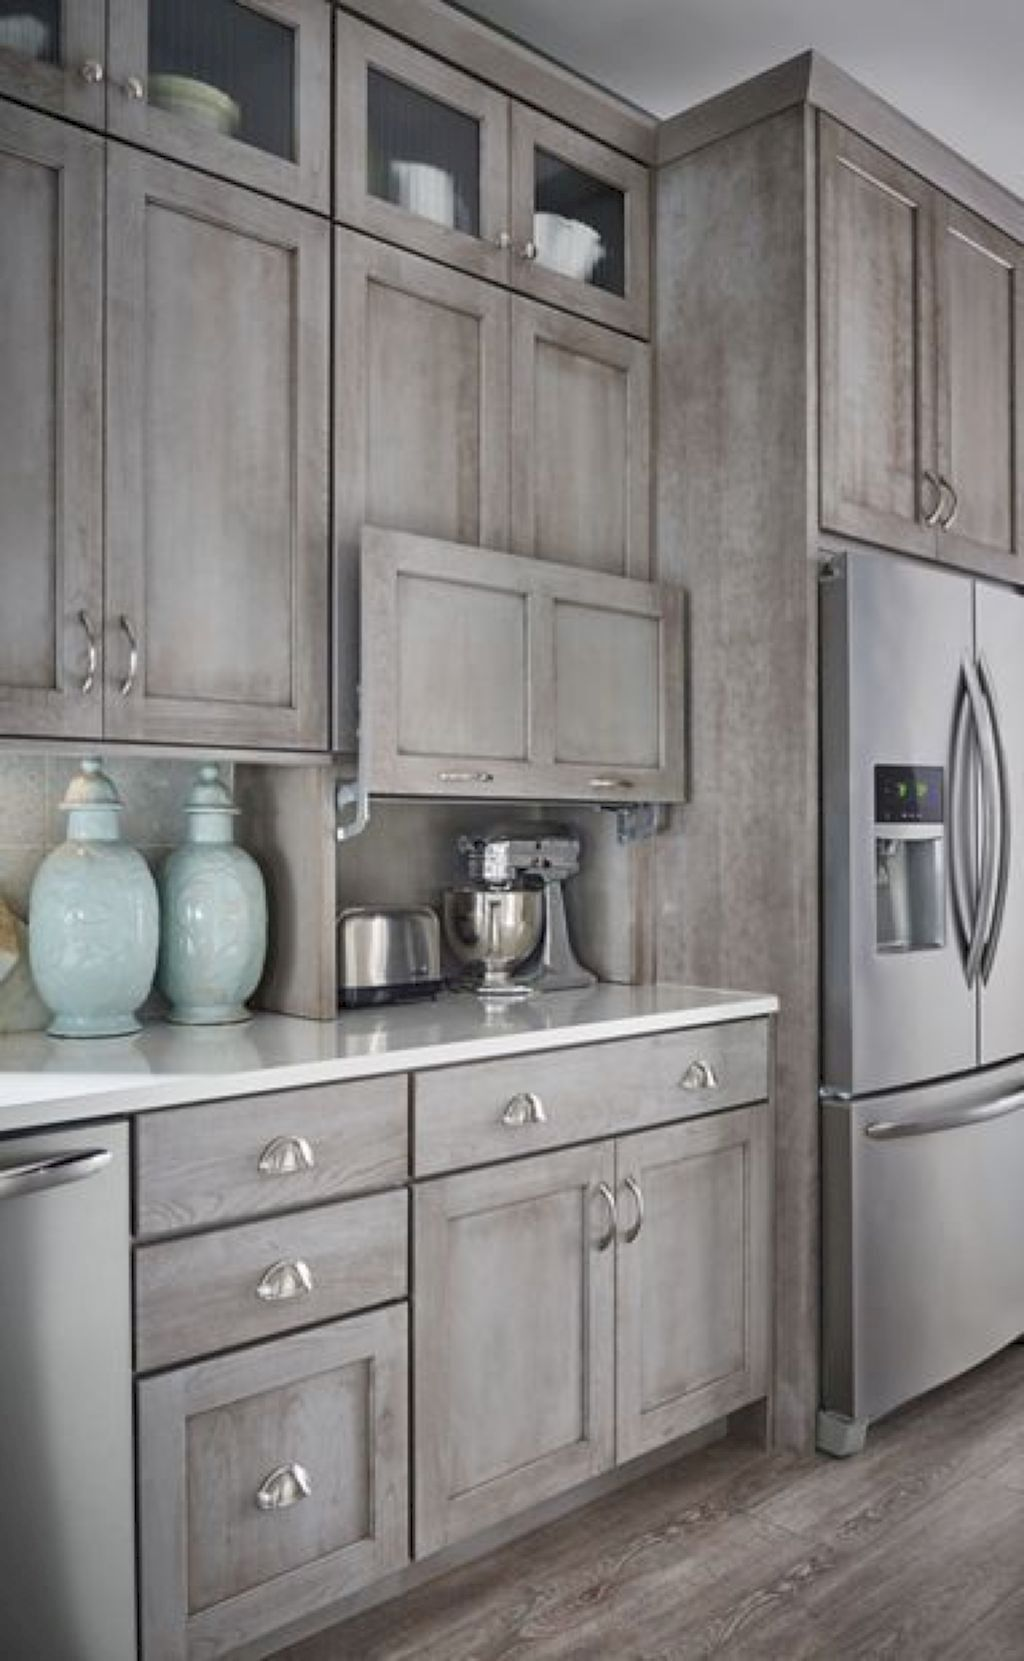 28 Modern Rustic Farmhouse Kitchen Cabinets Ideas Farmhouse Style Kitchen Rustic Farmhouse Kitchen Rustic Kitchen Cabinets